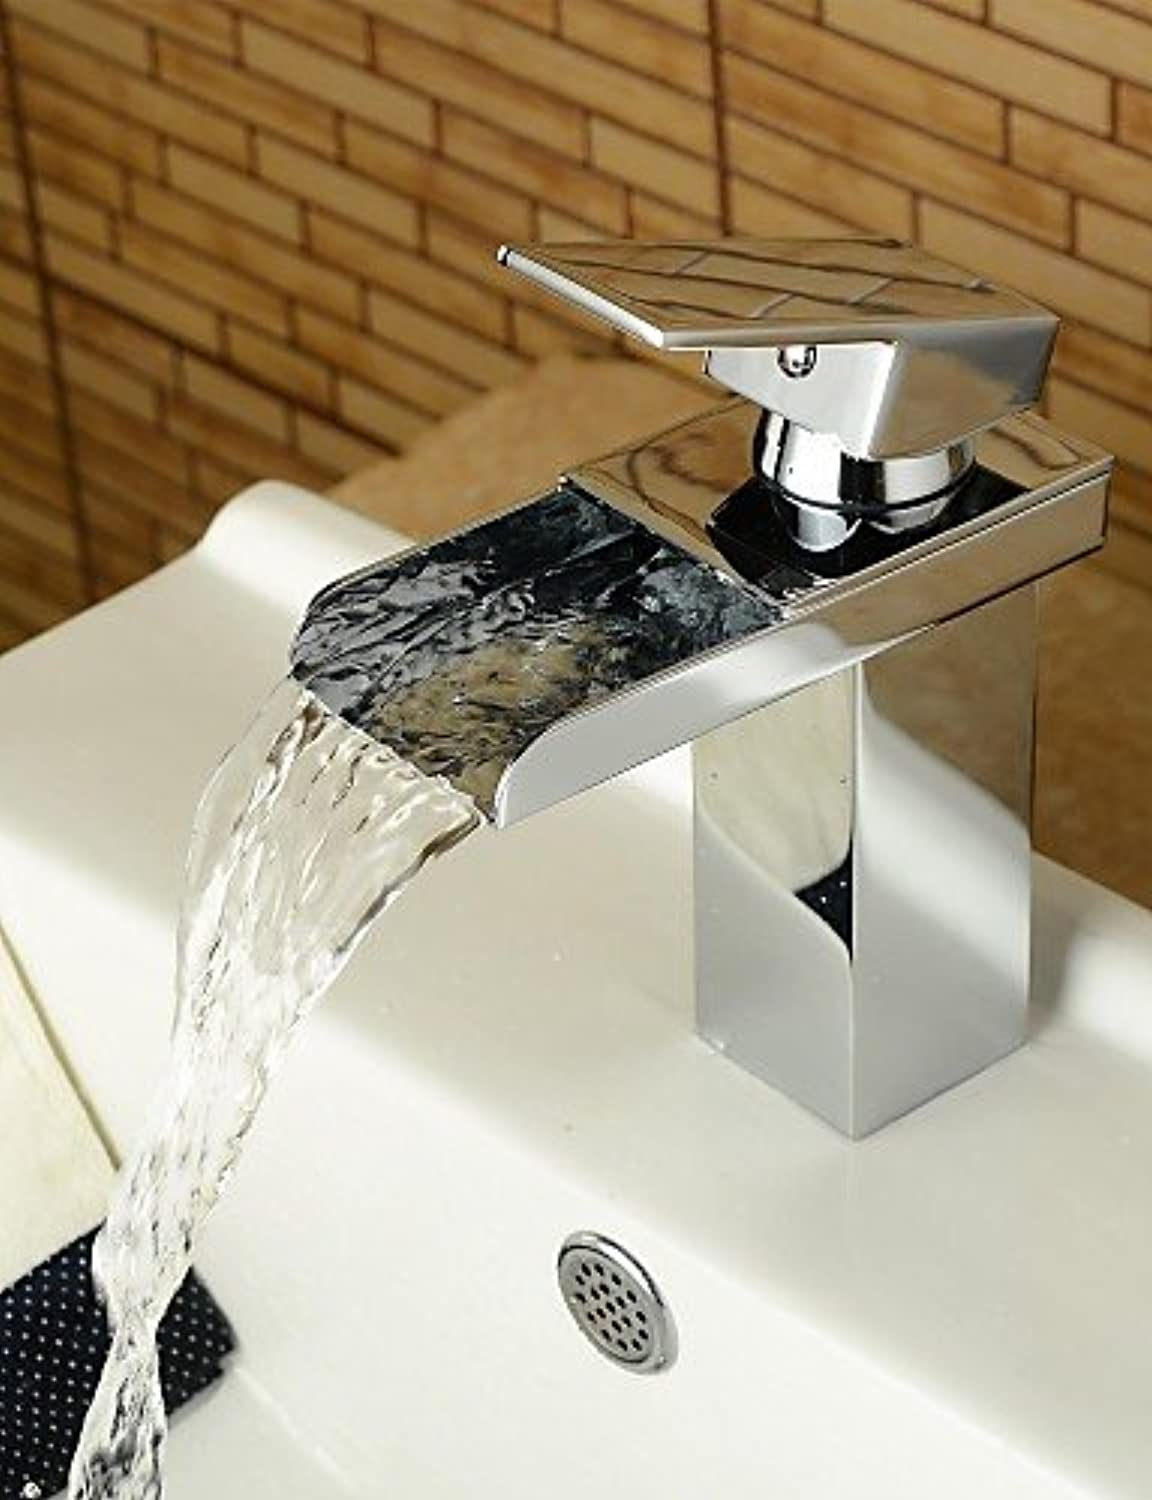 HJKDGH Faucet Modern Style Chrome Single Handle Single Hole Hot and Cold Water Bathroom Sink Faucet , silver